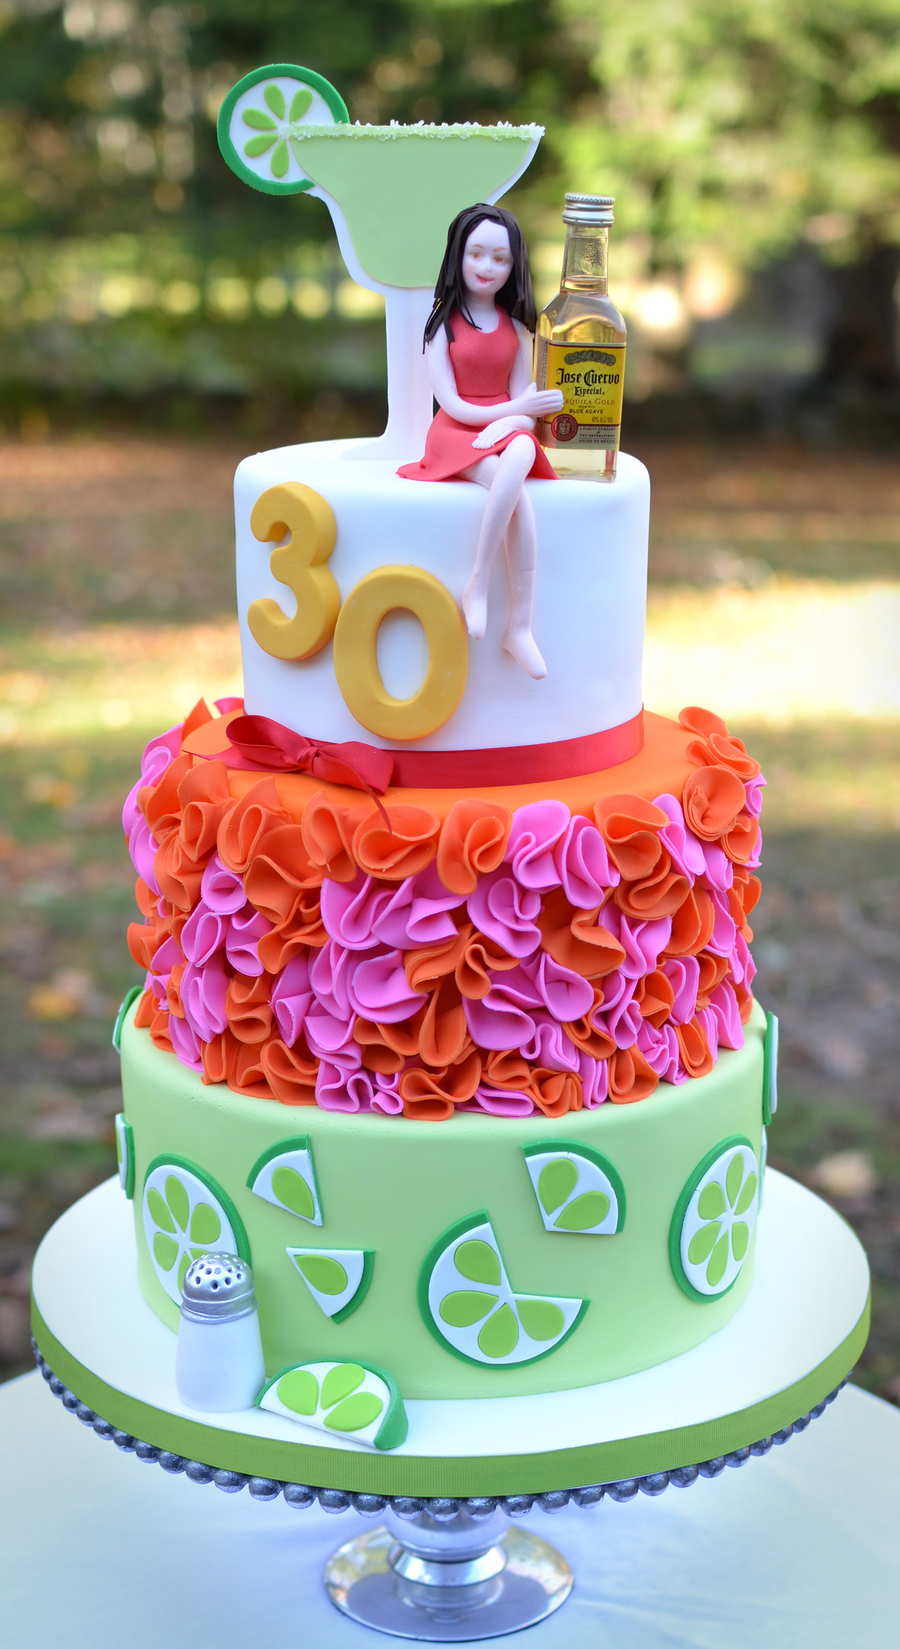 Margarita And Tequila Themed 30th Birthday Cake